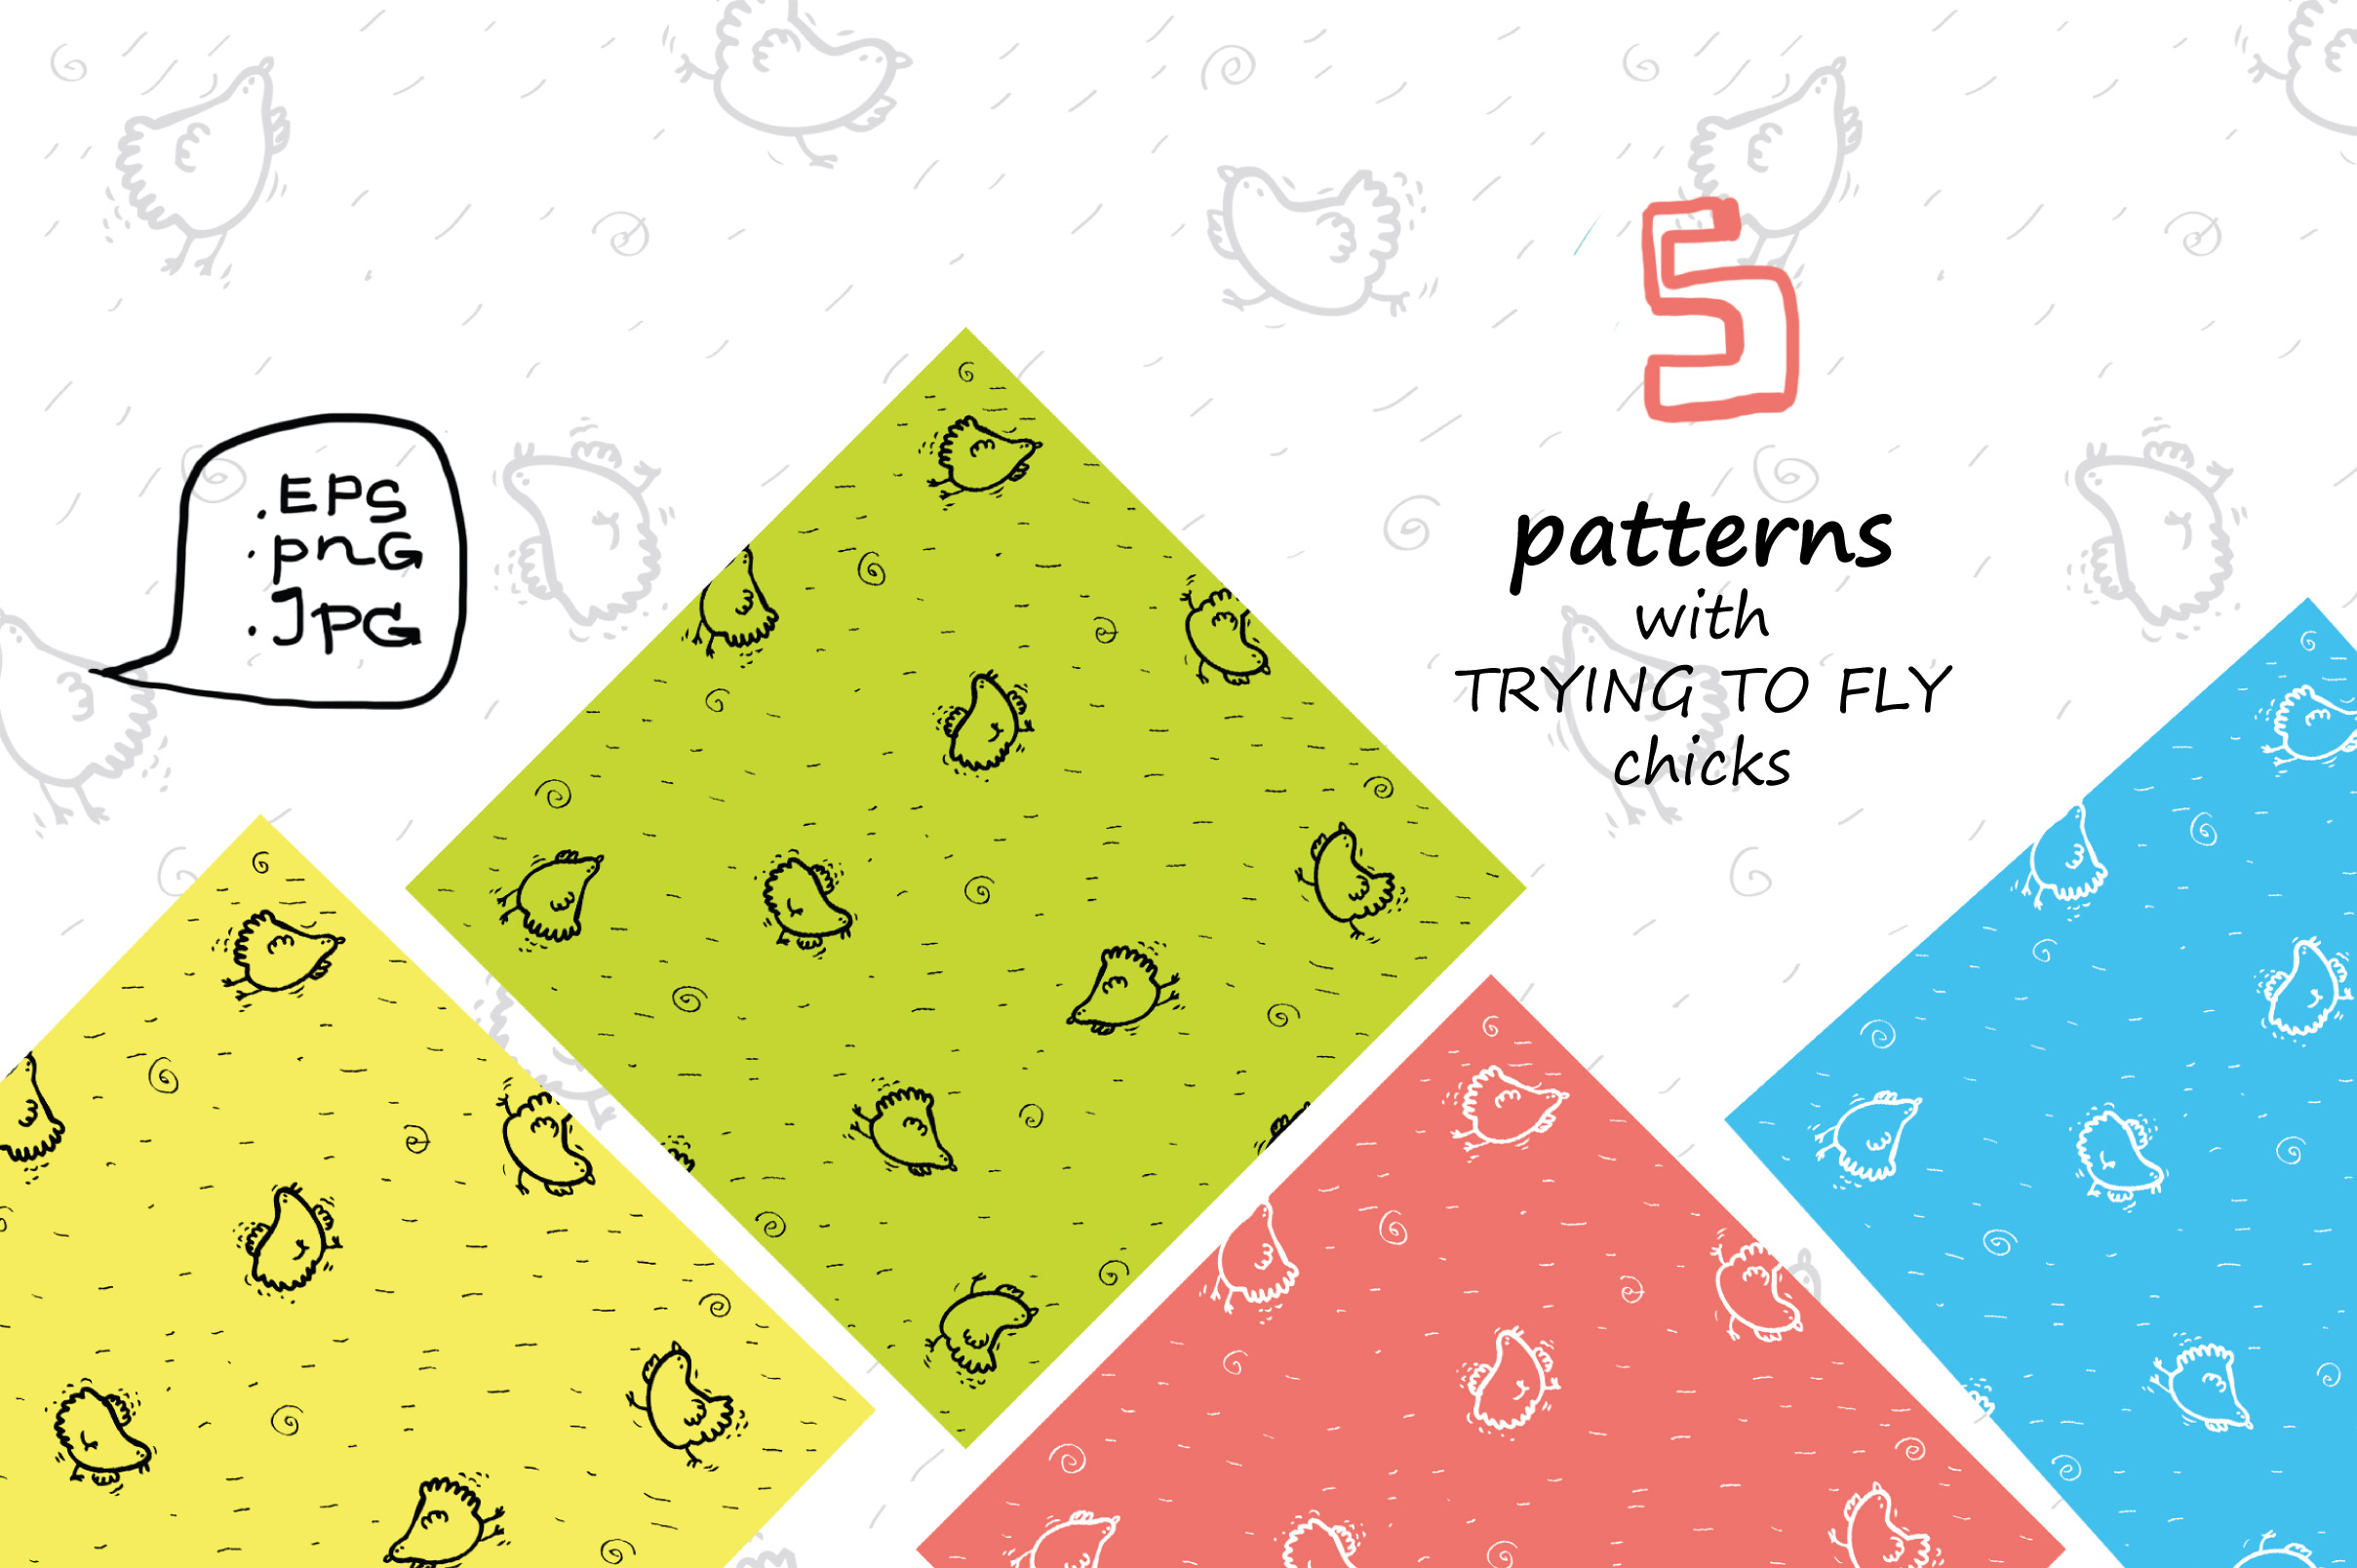 Wise Hens - 32 patterns, prints example image 4